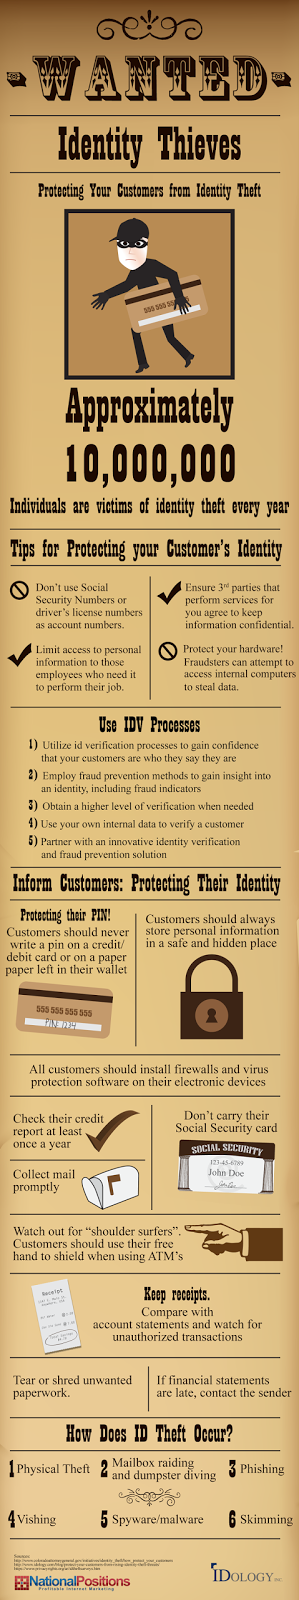 Protect Your Customers' Identifying Information